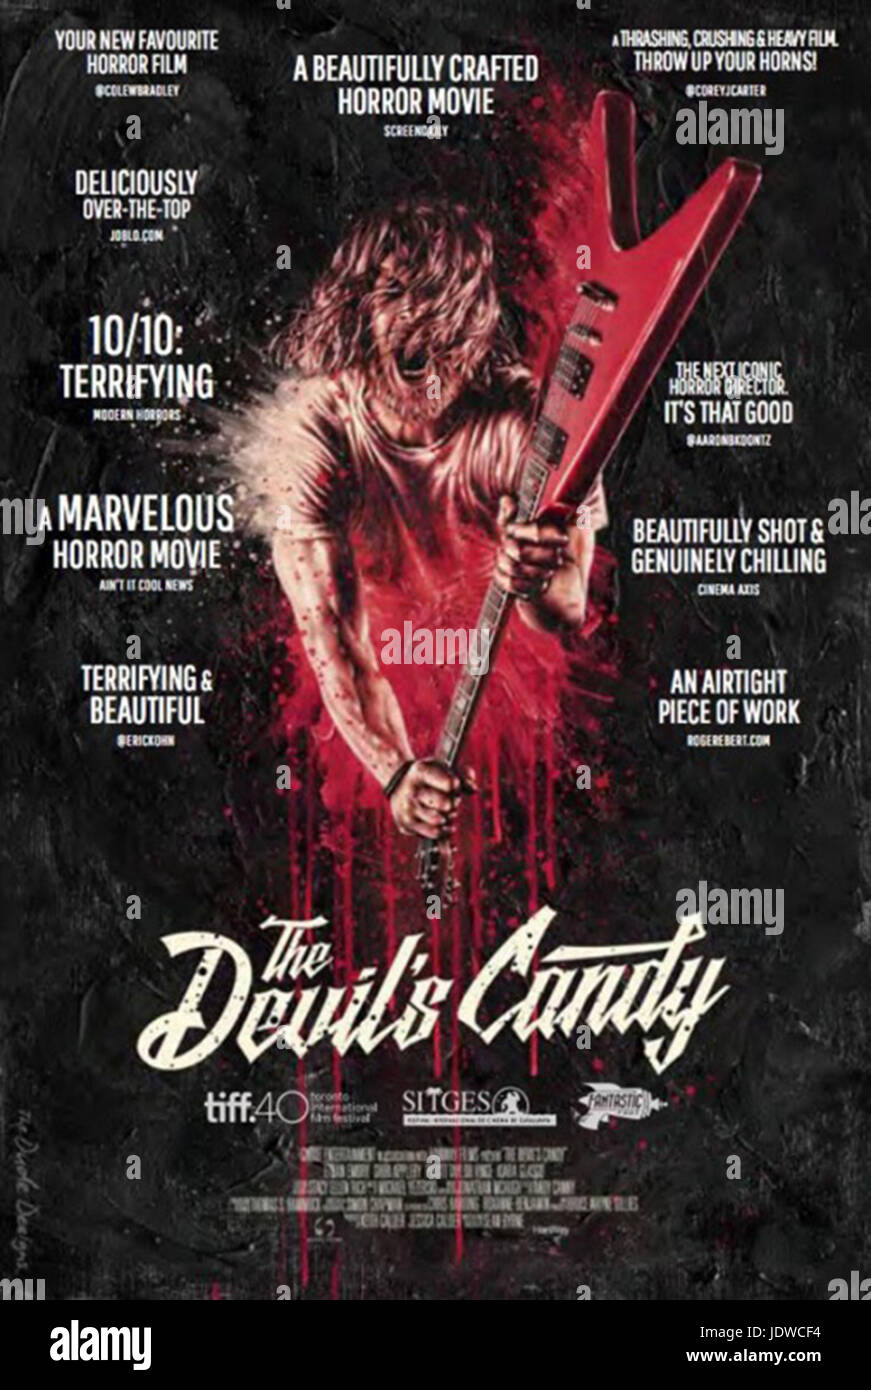 THE DEVIL'S CANDY (2015)  SEAN BYRNE (DIR)  SNOOT ENTERTAINMENT/MOVIESTORE COLLECTION LTD - Stock Image